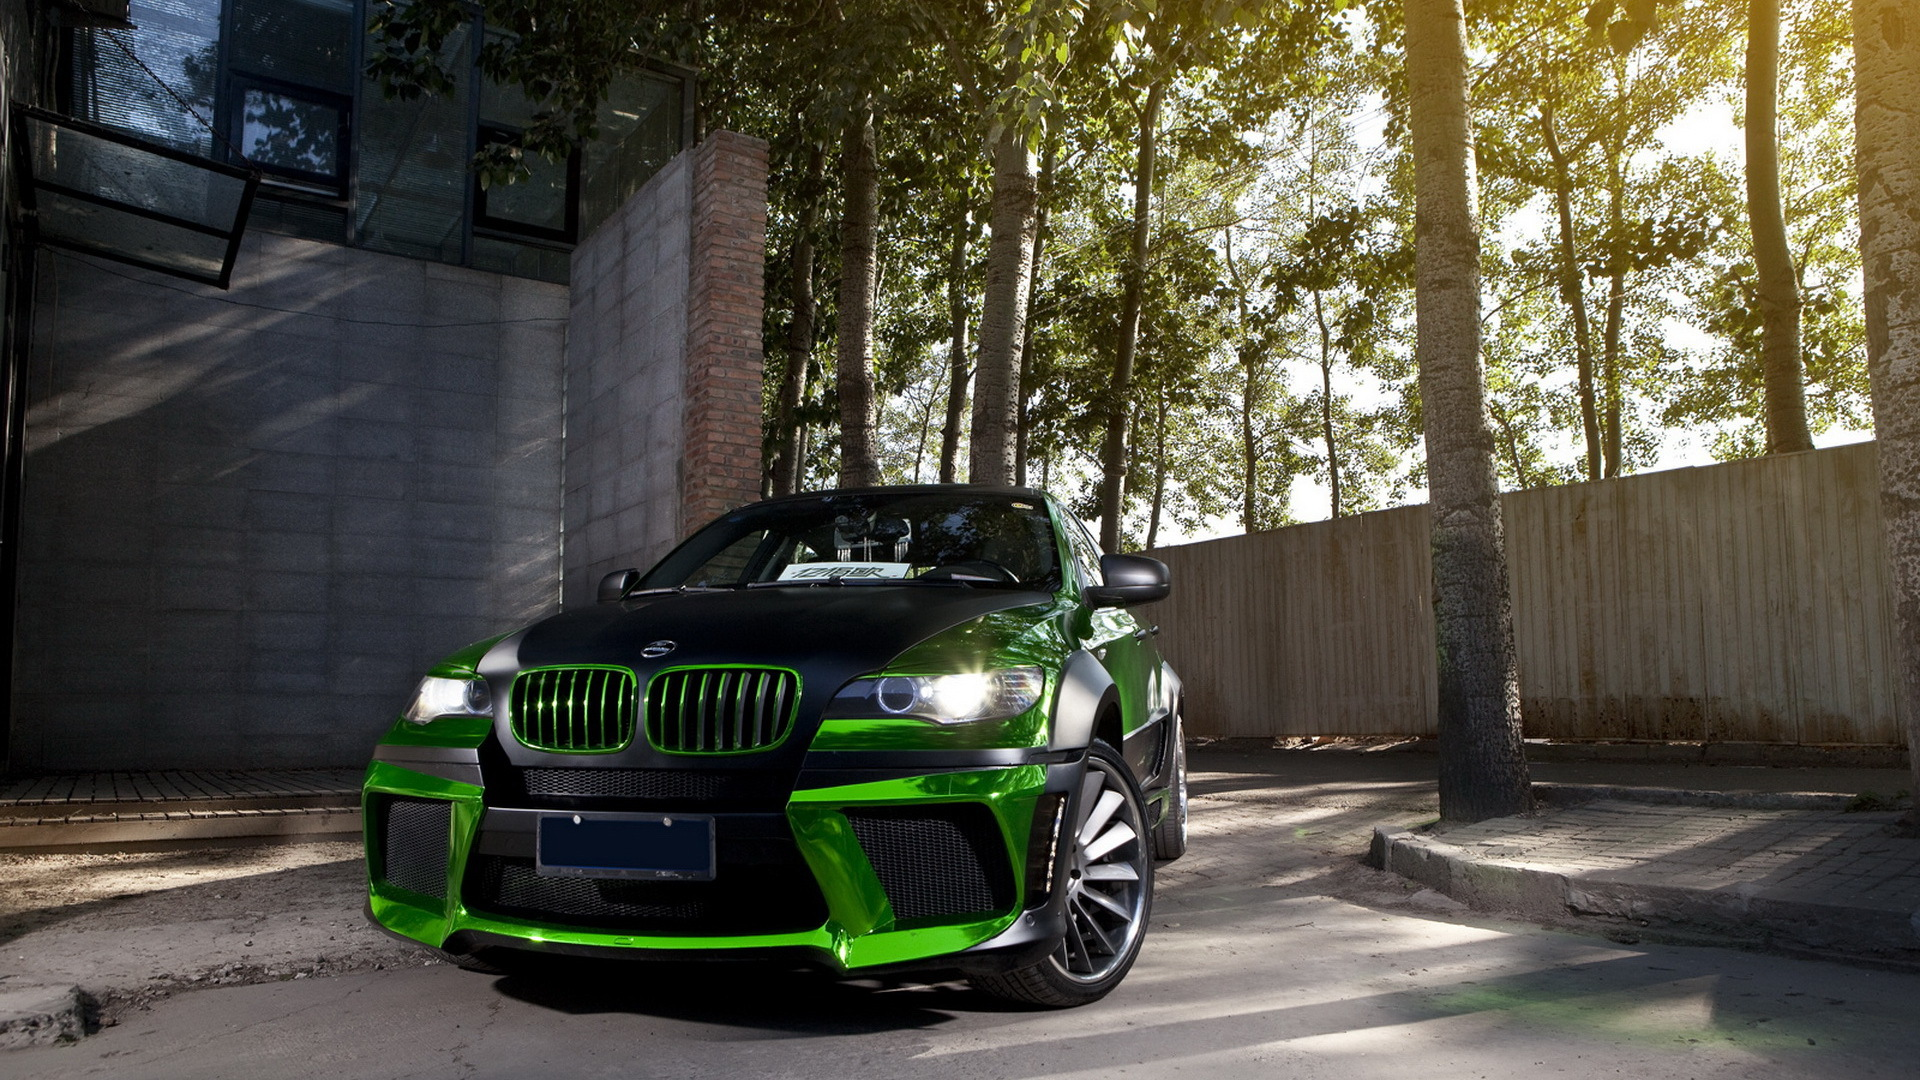 32 BMW X6 HD Wallpapers | Background Images - Wallpaper Abyss